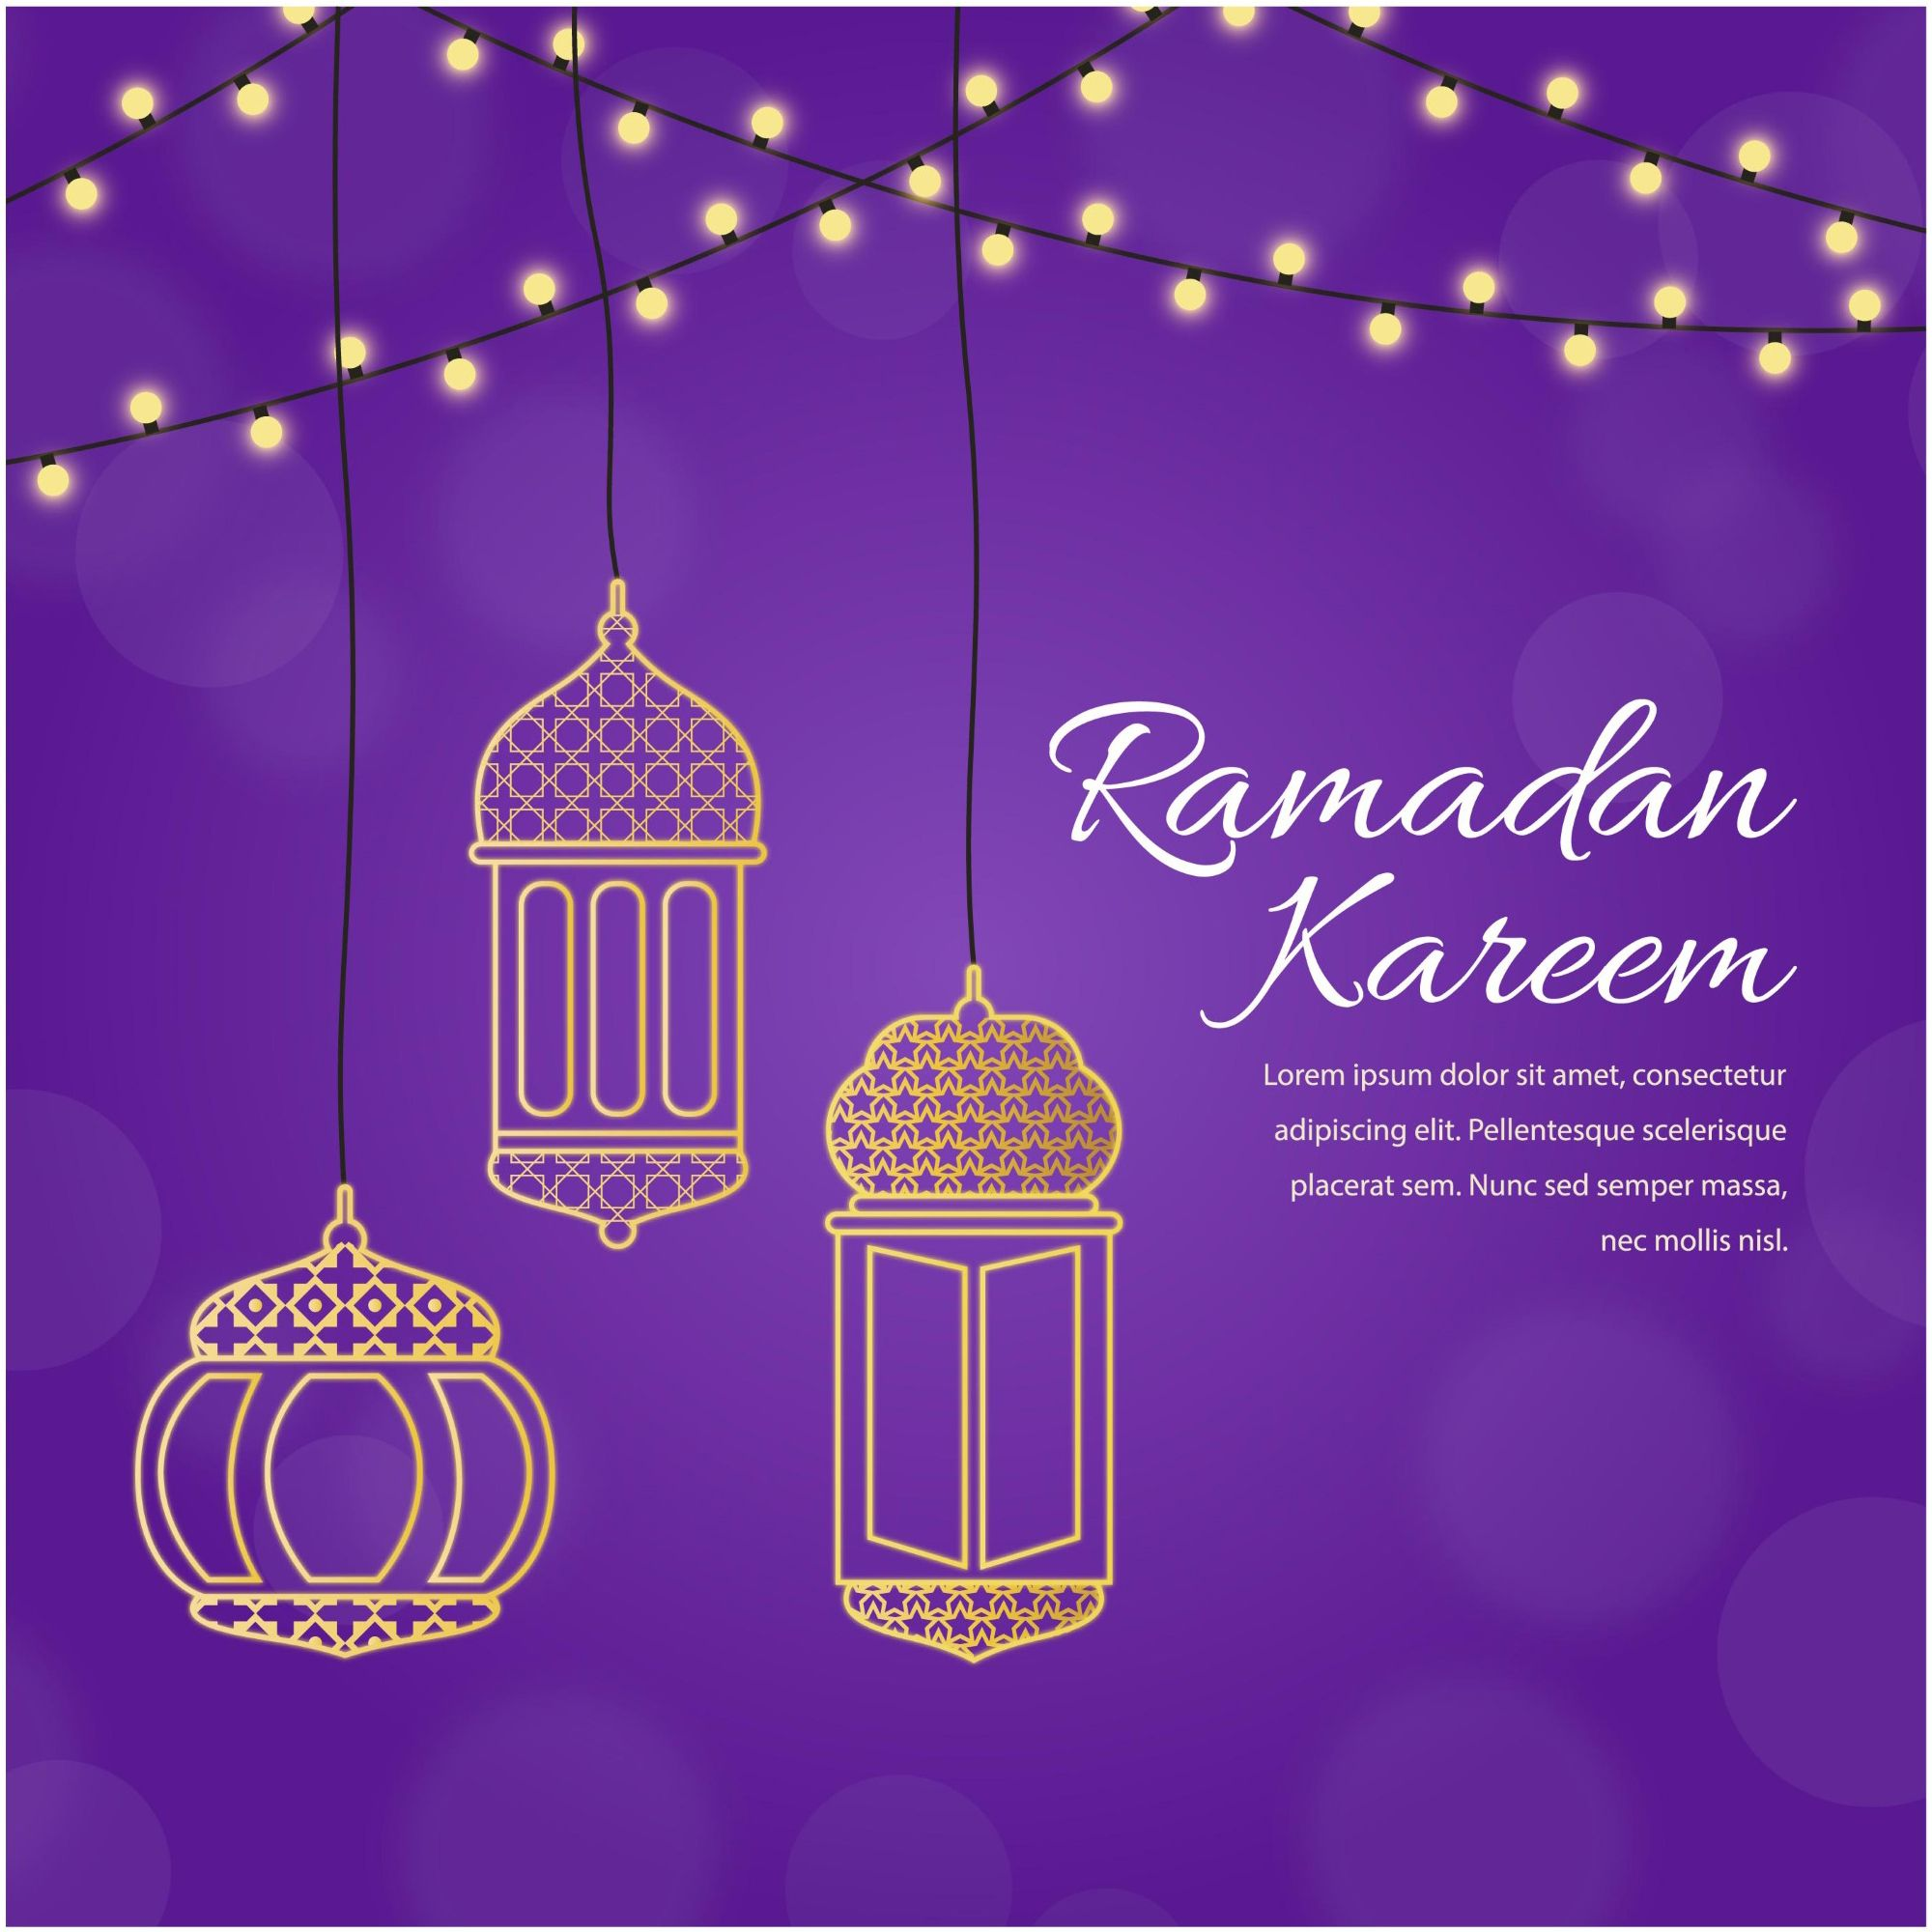 Muslim traditional holiday typographical design usable as eid mubarak muslim traditional holiday typographical design usable as background or greeting cards http kristyandbryce Choice Image